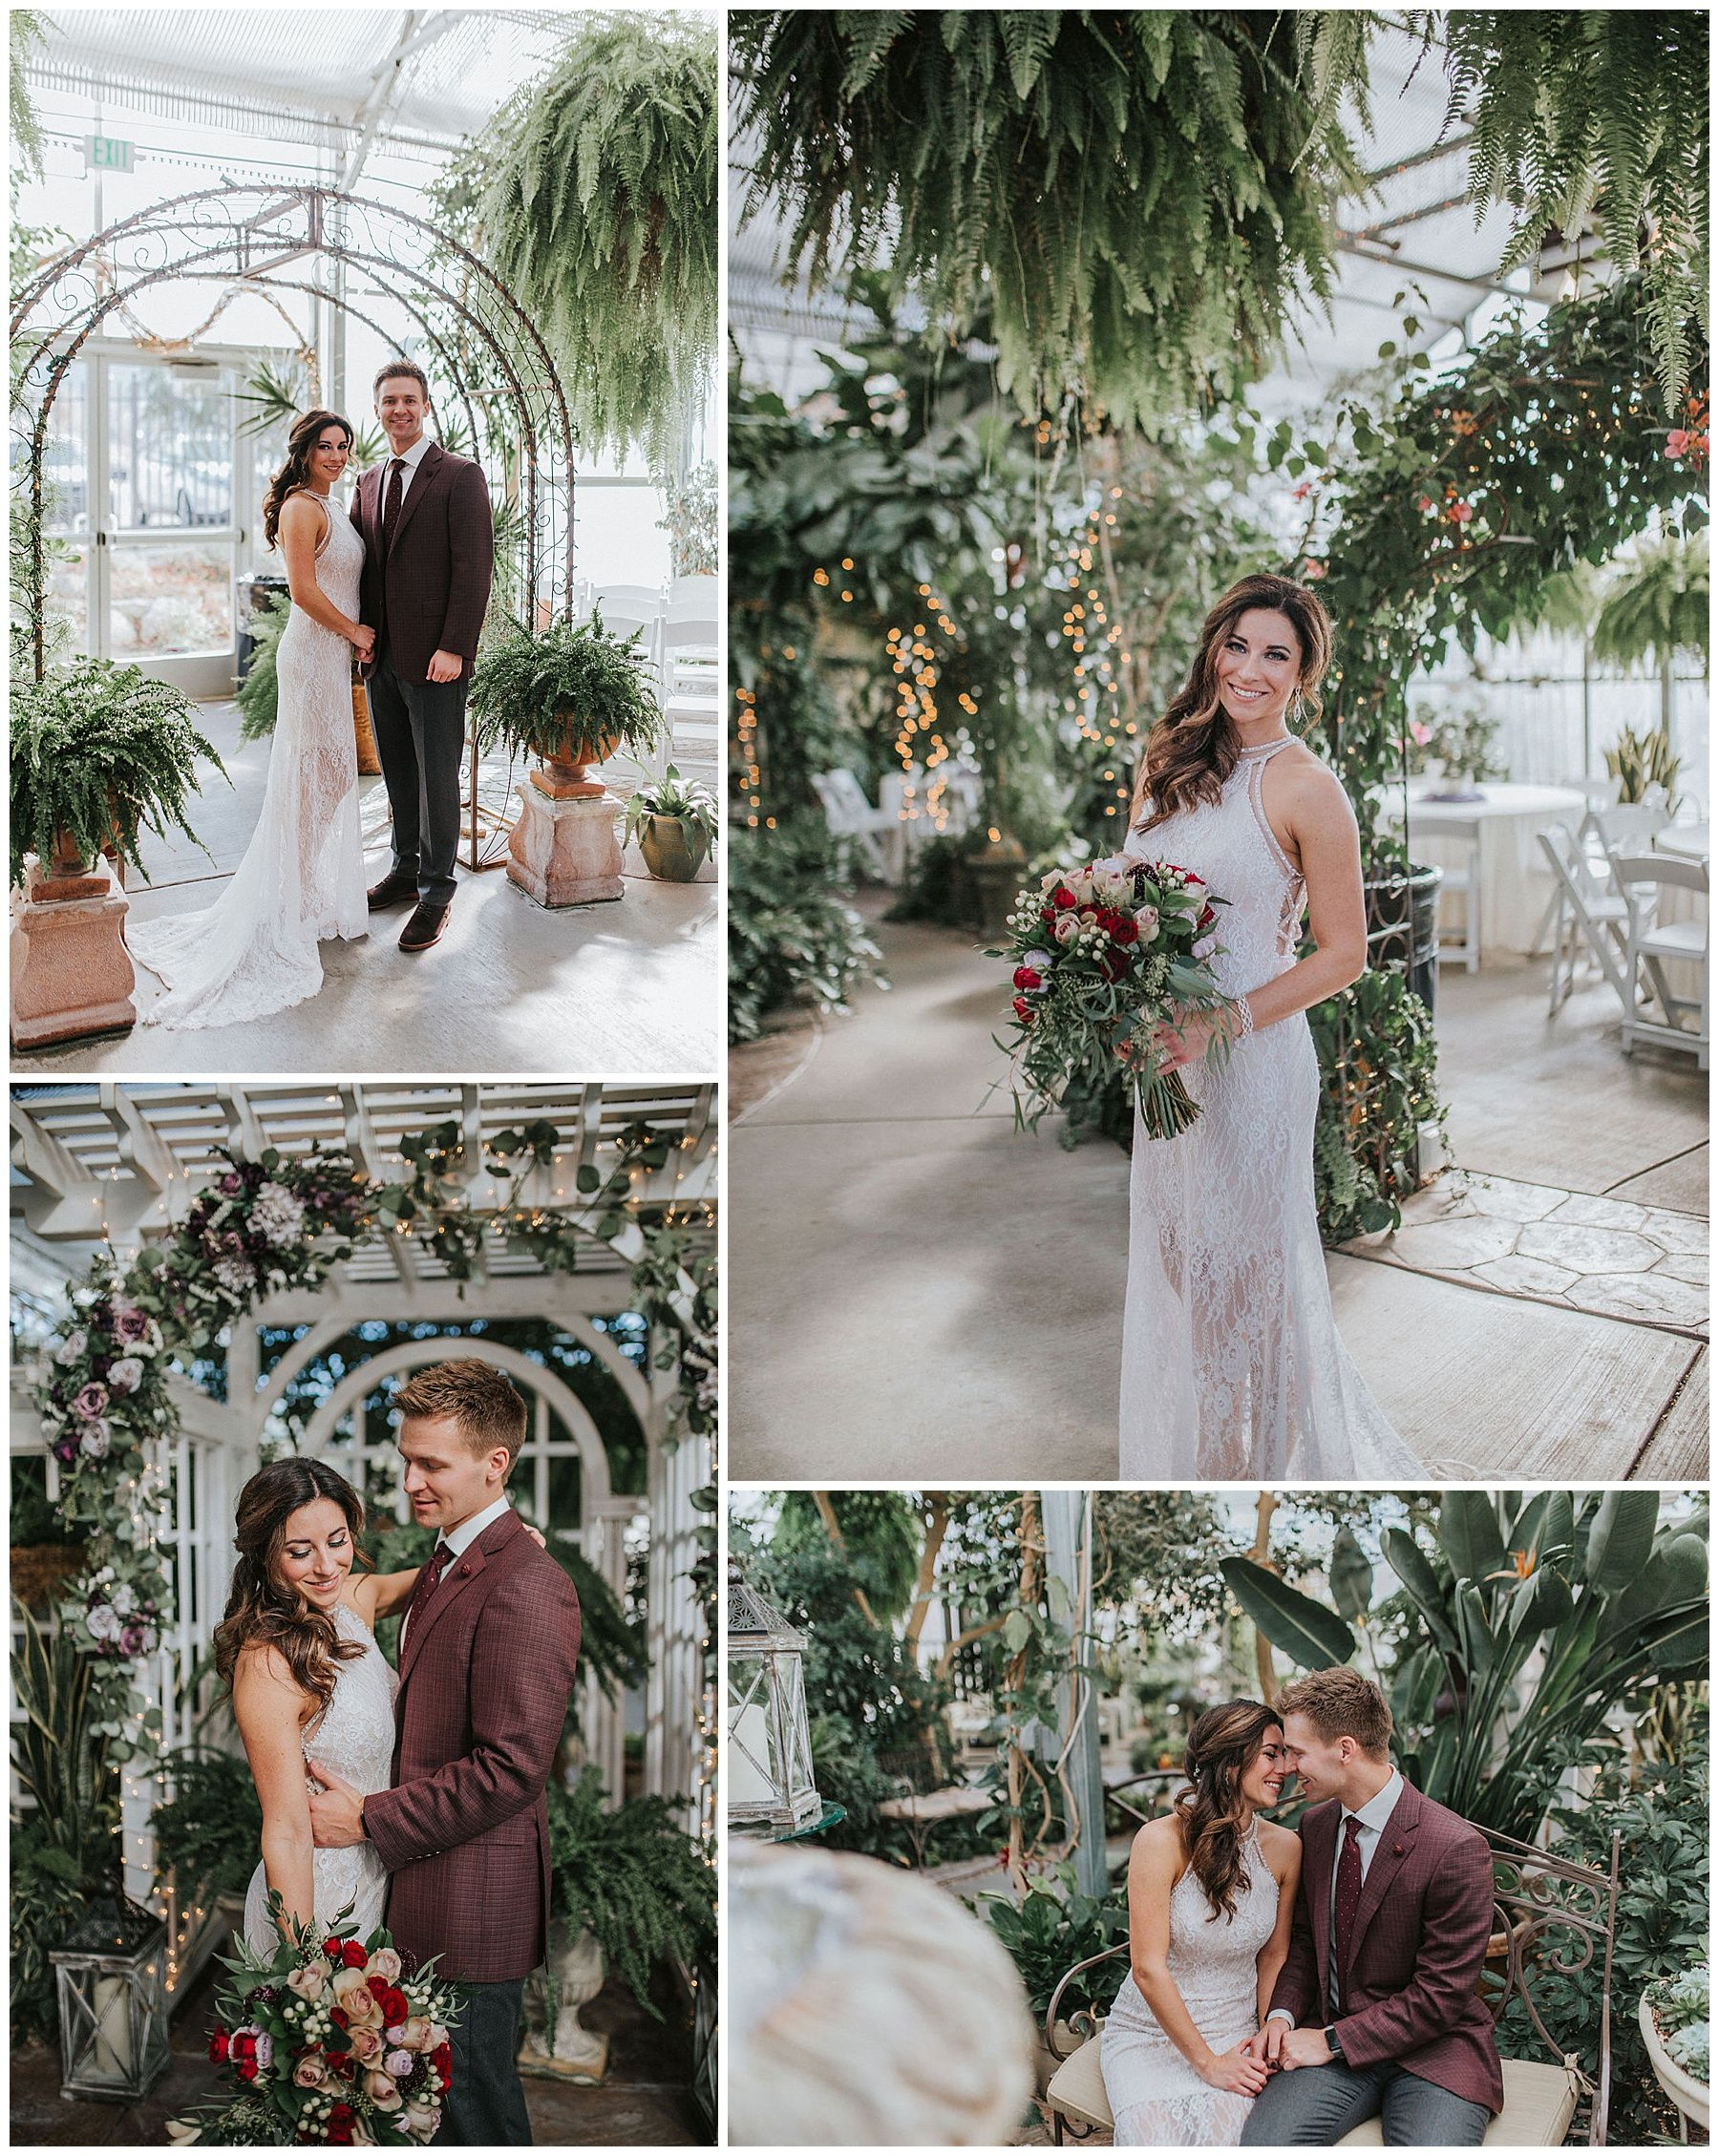 Floral and Greenhouse Dream Wedding Wedding, Knoxville